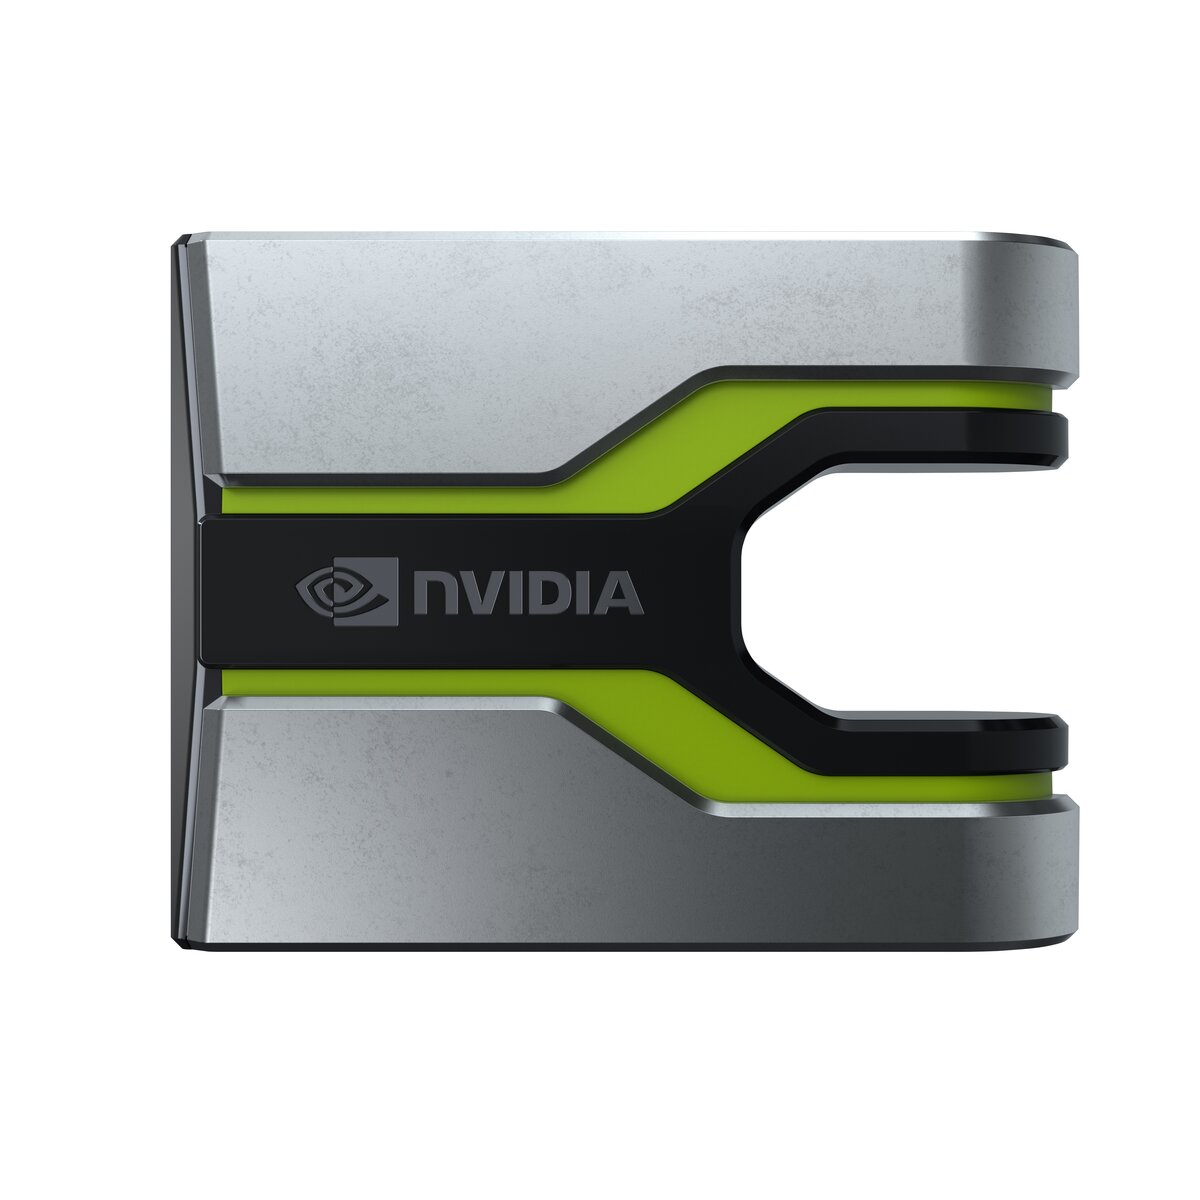 NVIDIA NVLink Bridge - video card SLI bridge